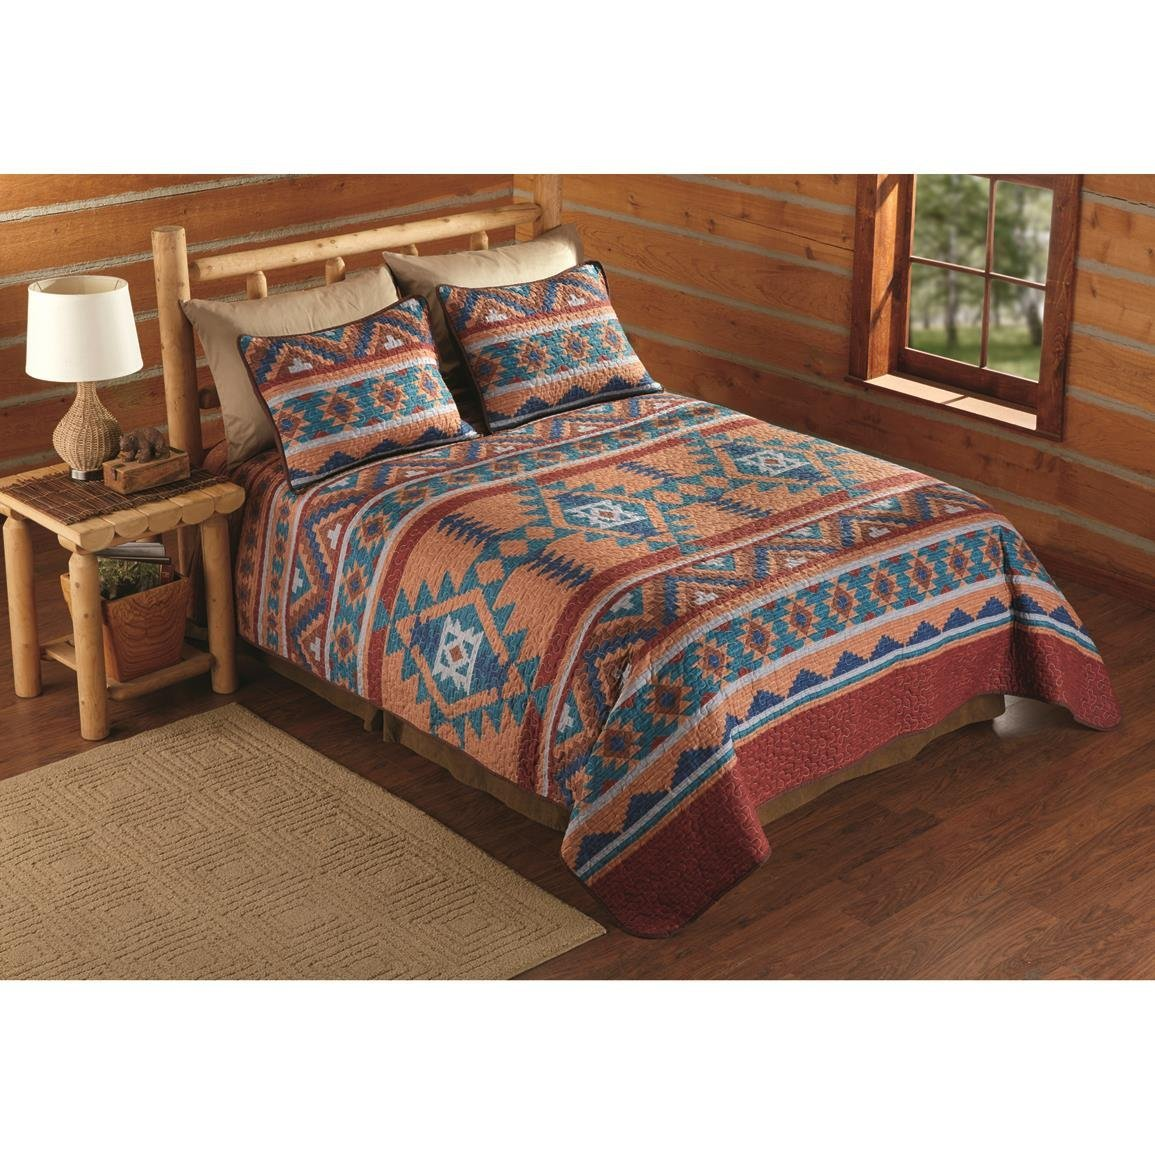 N2 3 Piece Red Blue Orange Southwest Quilt King Set, Southwestern Bedding Native American Ivory Taupe Brown Tribal Indian Themed Cabin Lodge Western Motifs Stripes, Cotton Polyester